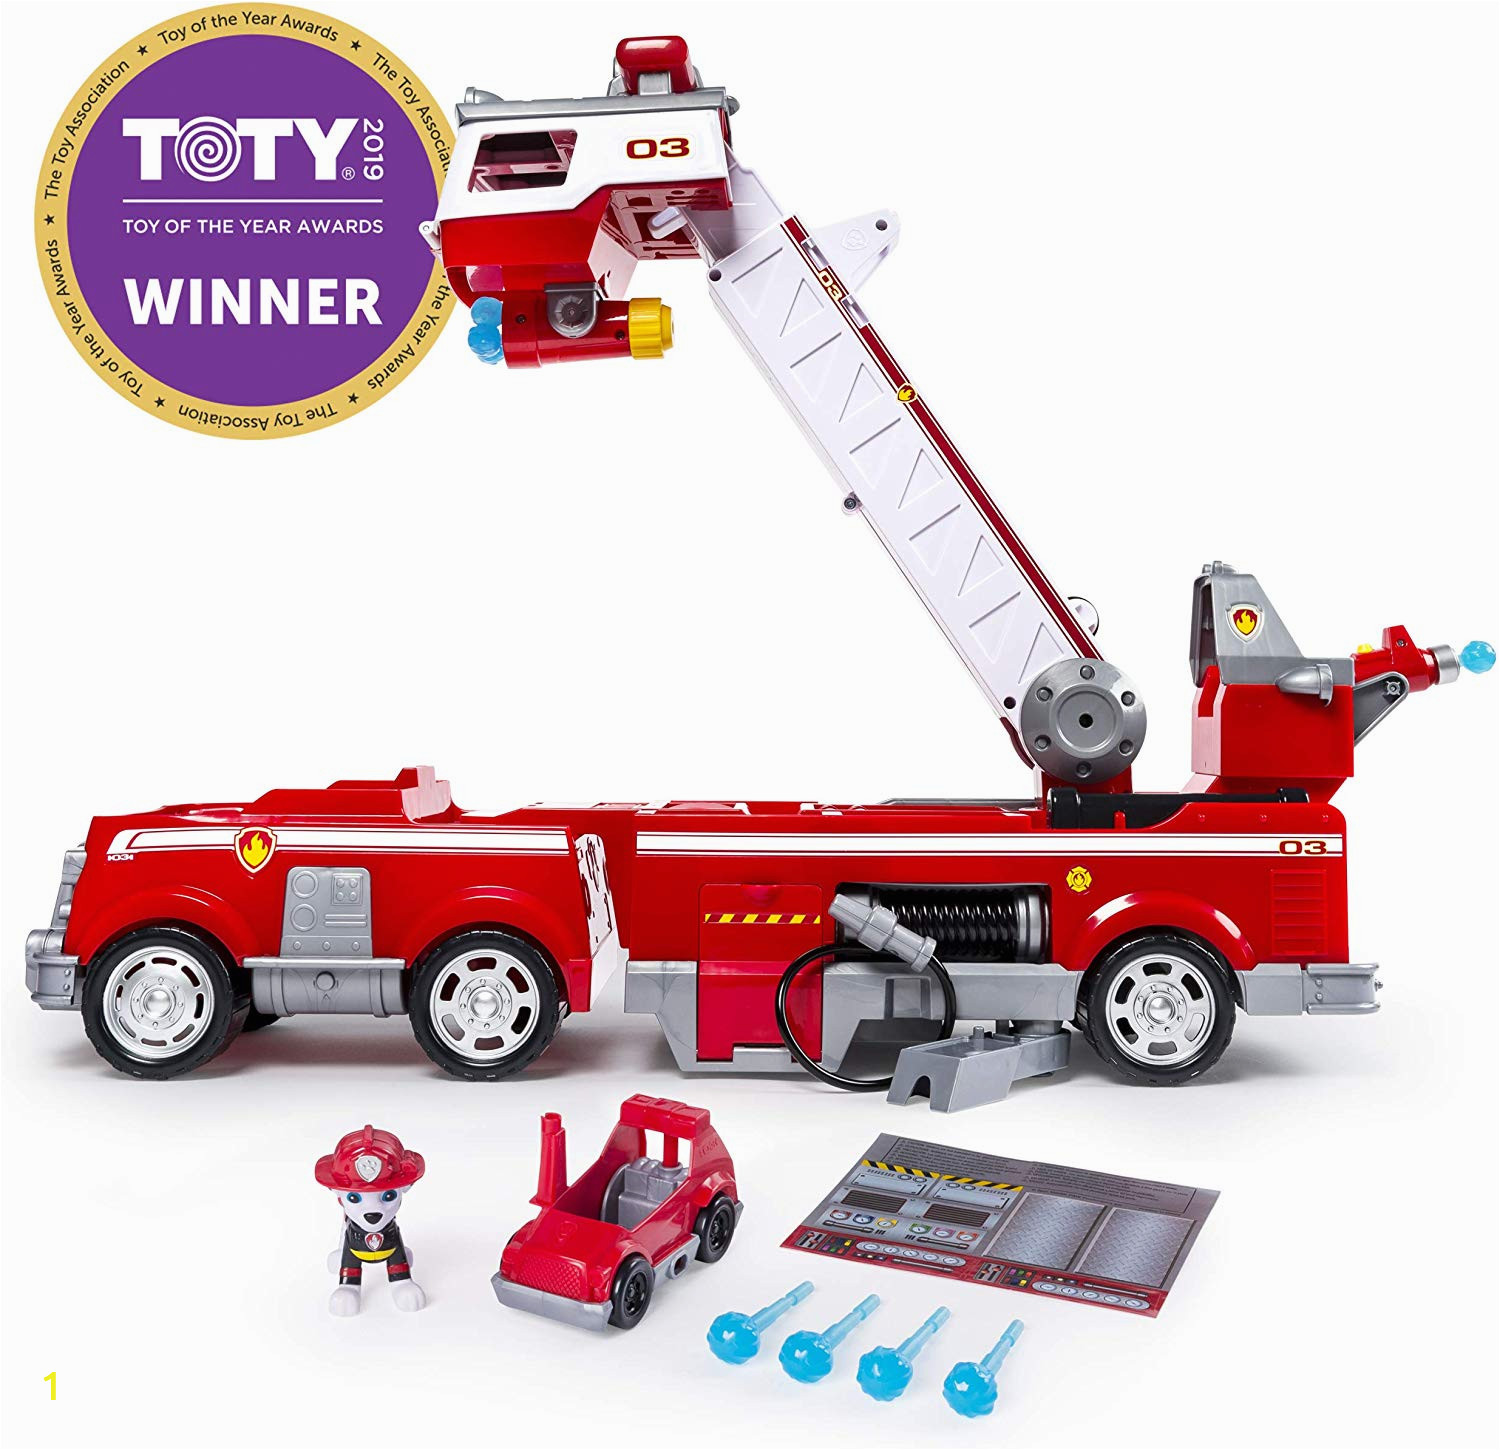 Paw Patrol Ultimate Rescue Coloring Pages Paw Patrol Ultimate Rescue Fire Truck with Extendable 2 Foot Tall Ladder Ages 3 and Up